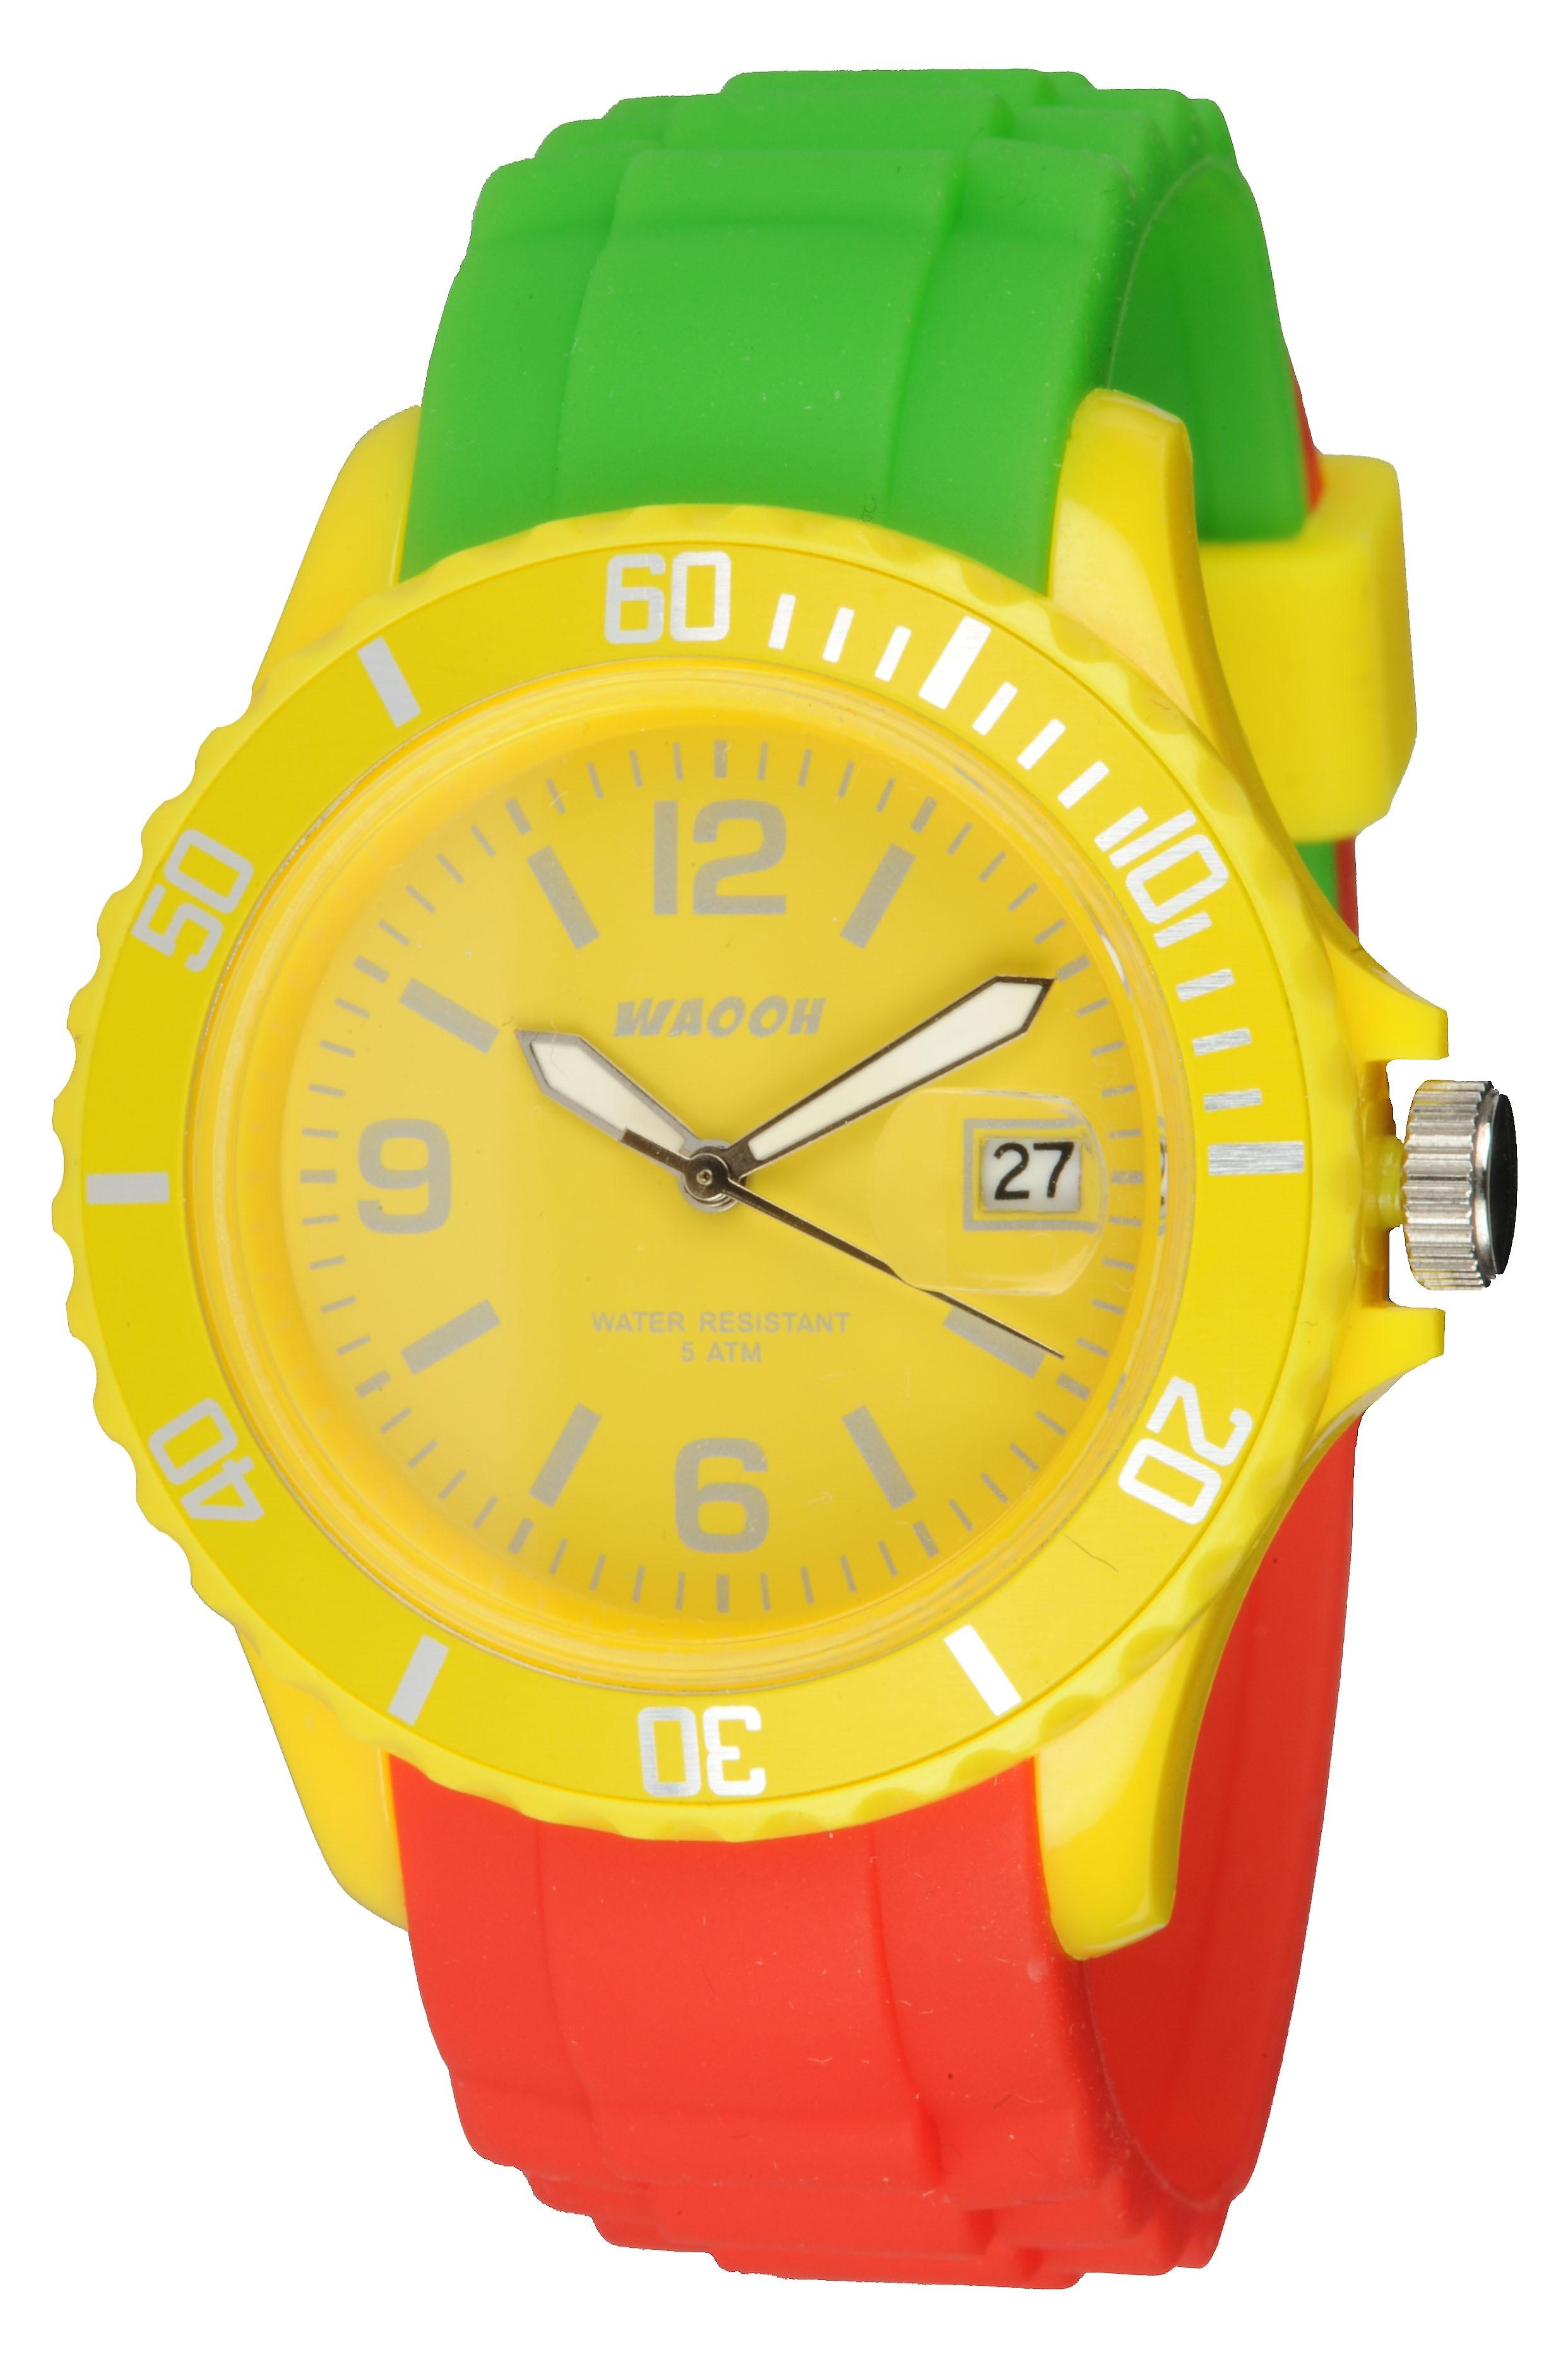 Waooh - Watch Rasta Monaco38